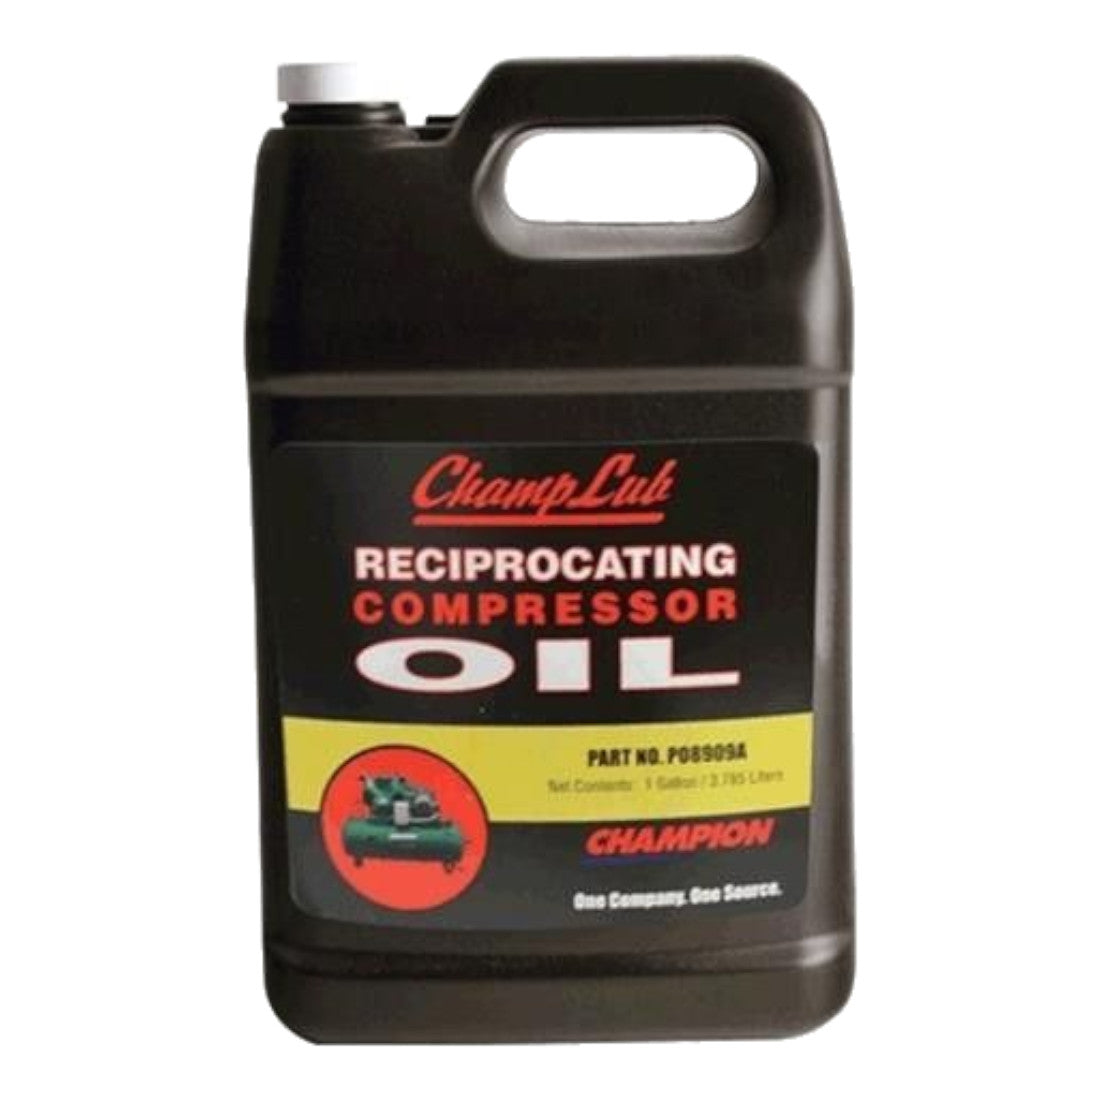 Champion ChampLub P08909A Reciprocating Compressor Oil 1 Gallon